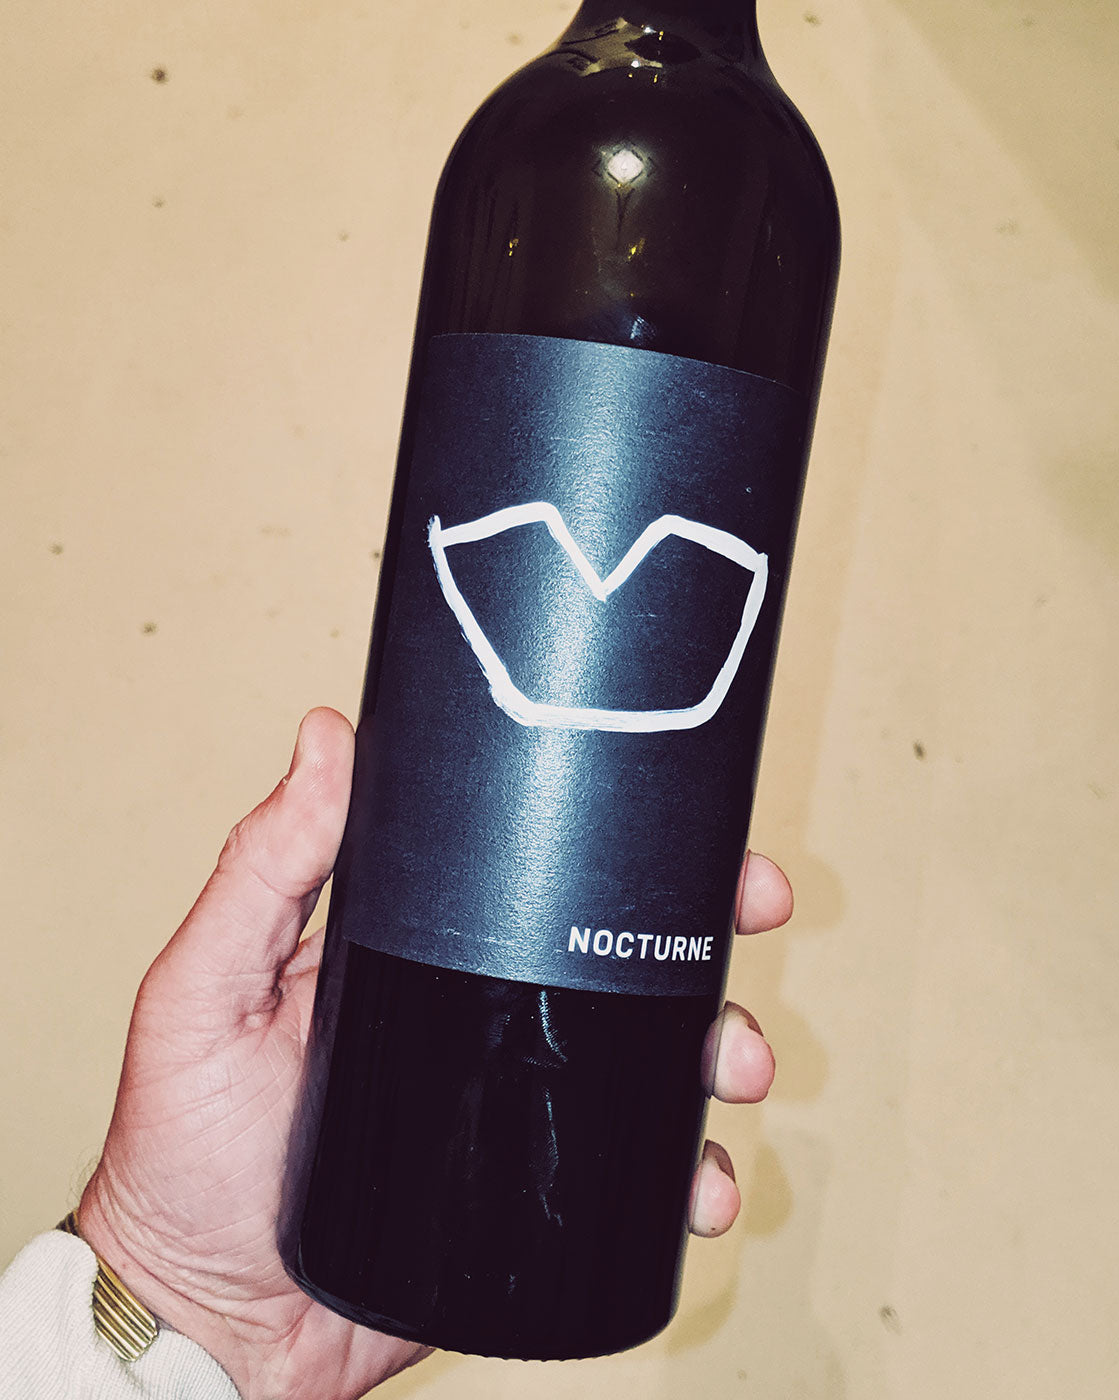 Wine review: Nocturne 'Cabernets' 2018